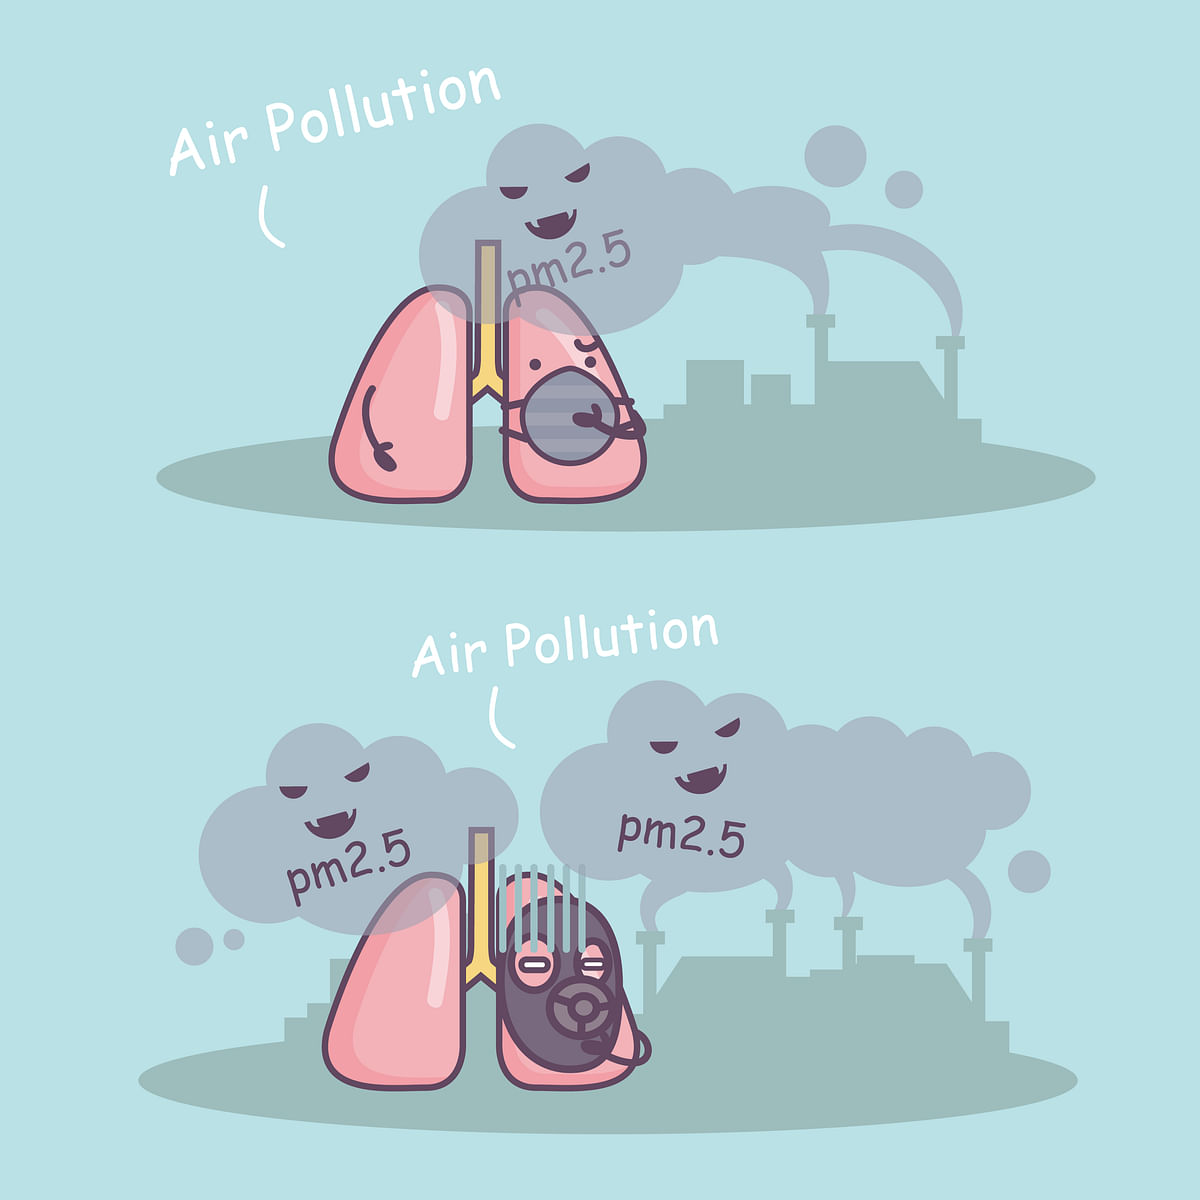 Vulnerable populations such as children, the elderly, or those with pre-existing conditions are particularly susceptible to air pollution exposure. (Photo: iStock)